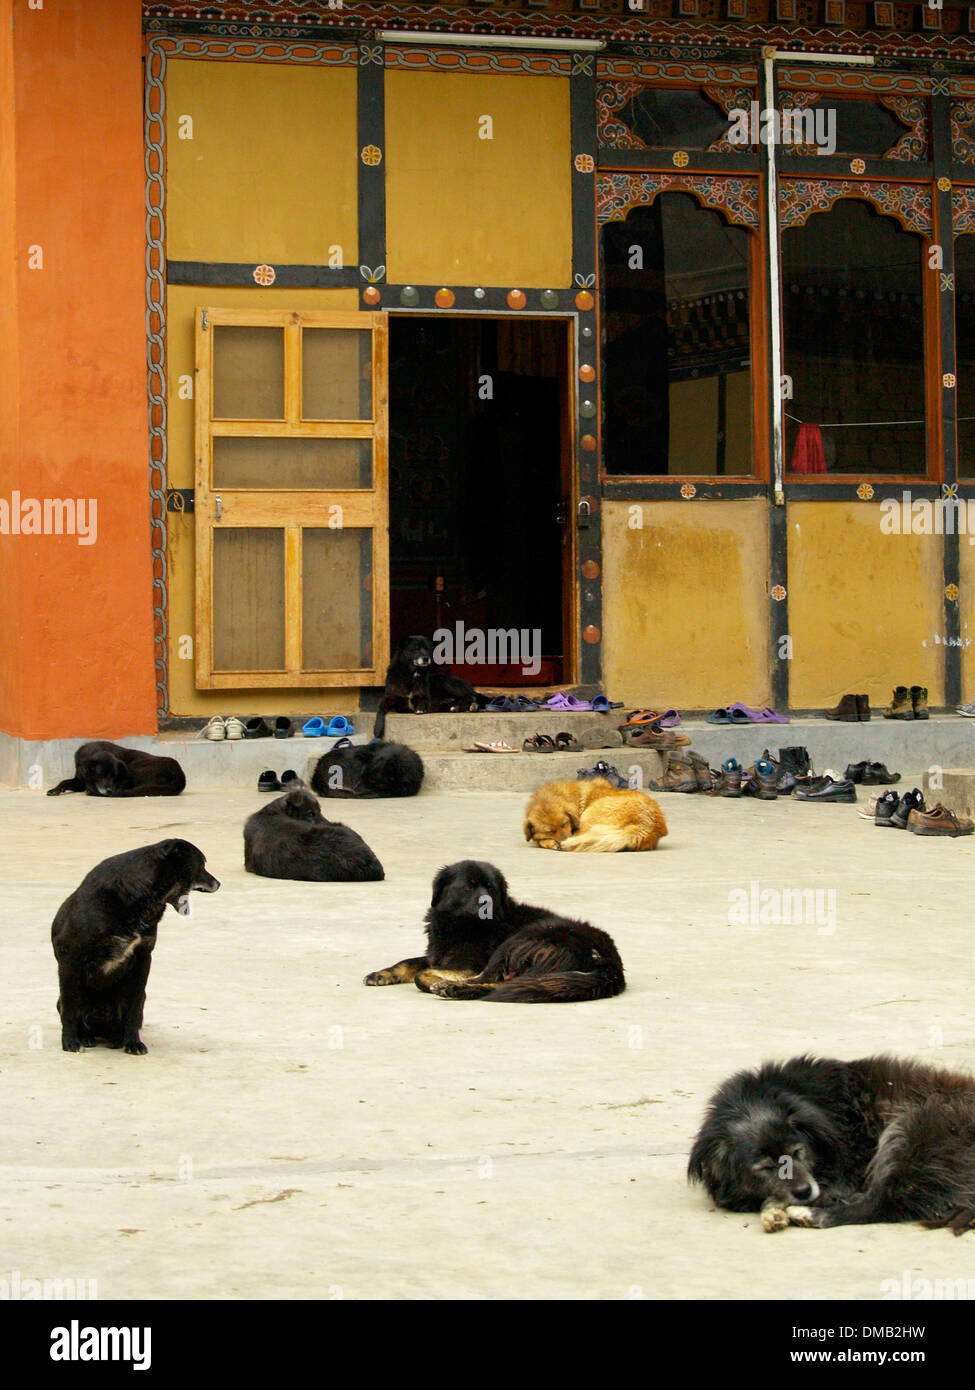 Dogs waiting for food at a monastery in Thimphu,Bhutan - Stock Image